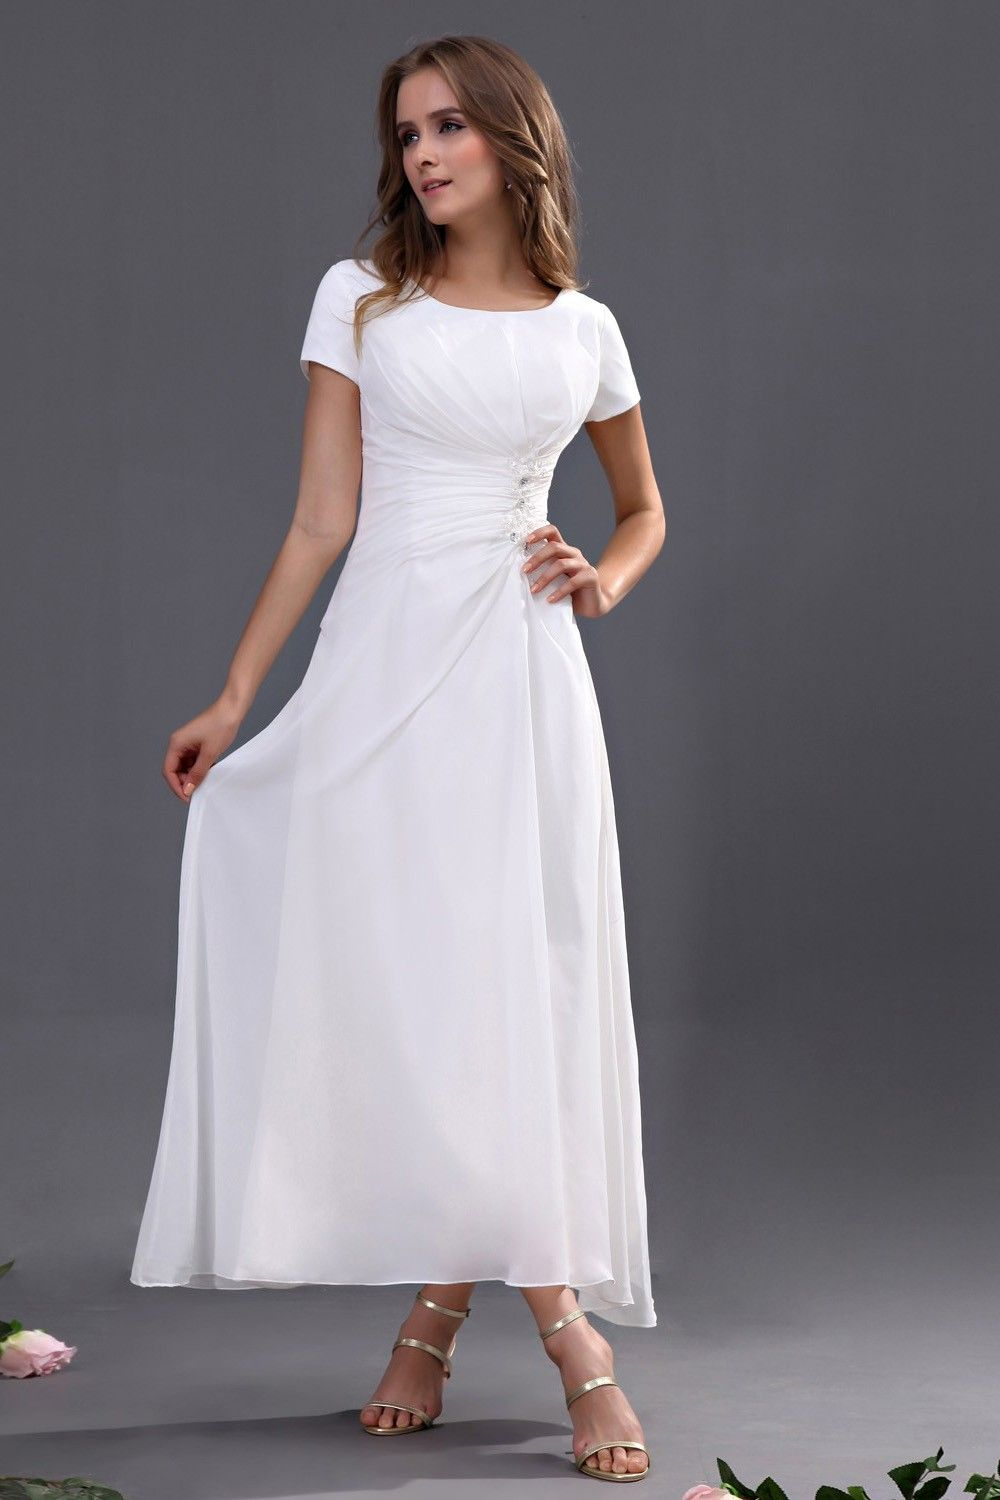 White chiffon ankle length bridesmaid dress simple but would work white chiffon ankle length bridesmaid dress simple but would work for a less formal wedding ombrellifo Image collections